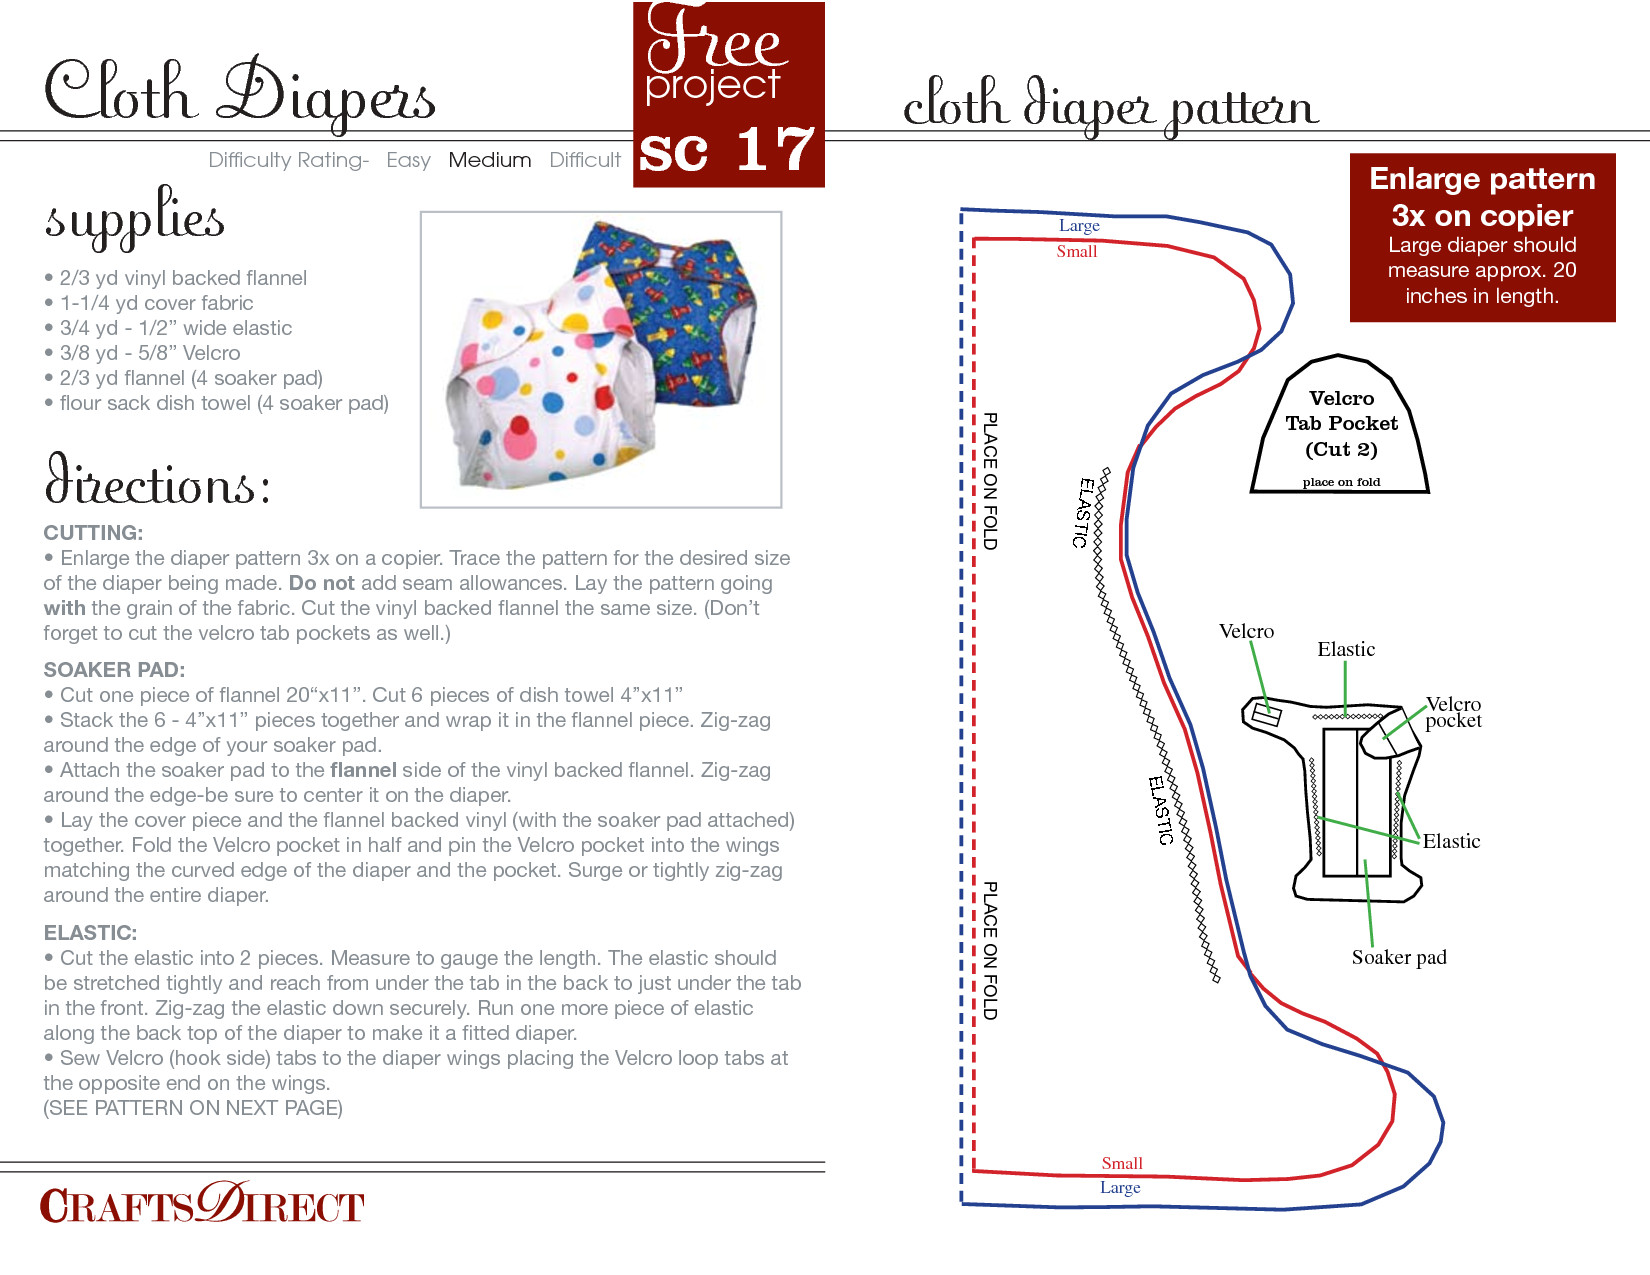 Free Diaper Cover Pattern New 8 Best Of Cloth Diaper Printable Pattern Cloth Of Brilliant 41 Pictures Free Diaper Cover Pattern